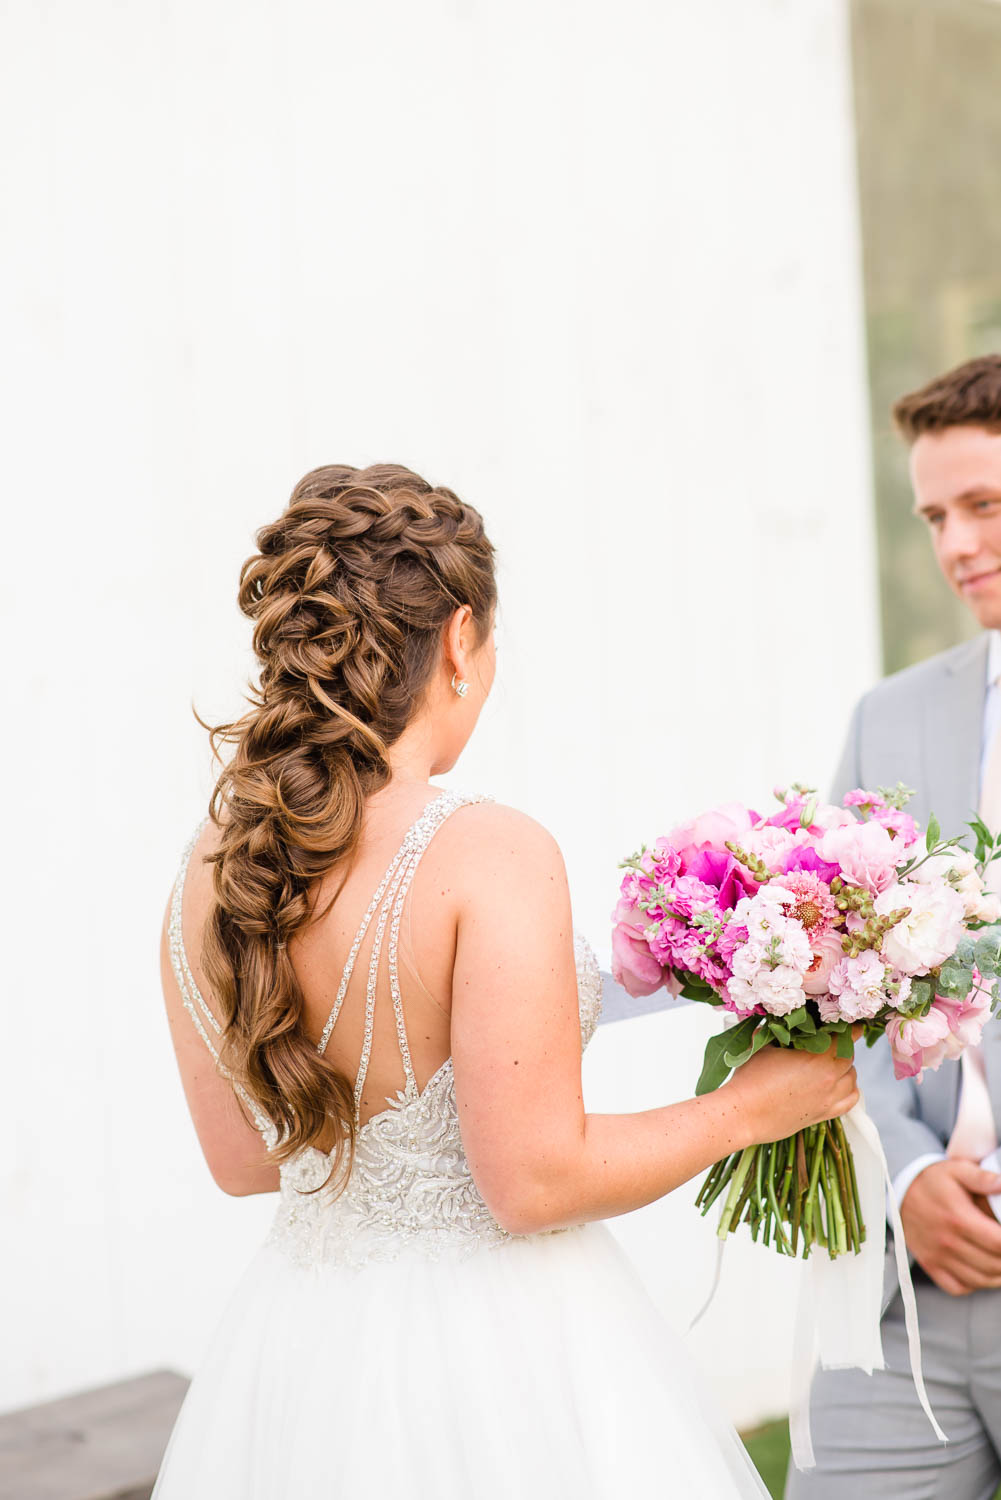 gorgeous wedding hair with braids